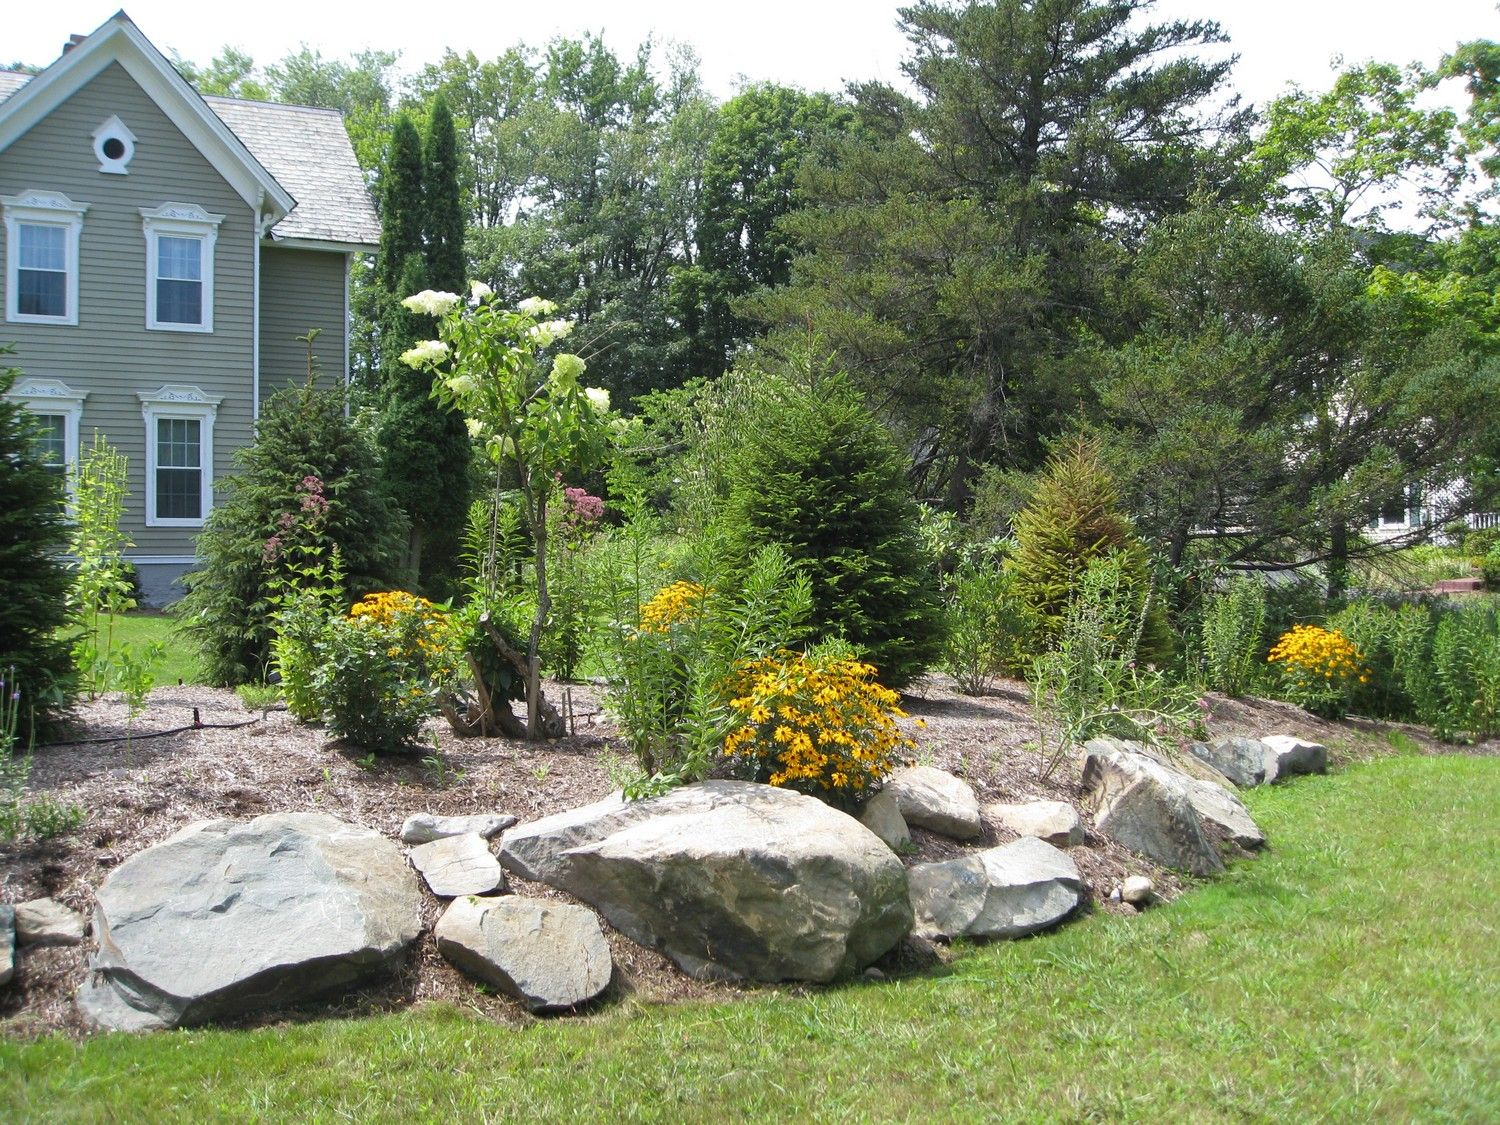 Pin By Sue Bila On Island And Stones Burm Landscaping Garden Landscape Design Landscaping With Rocks